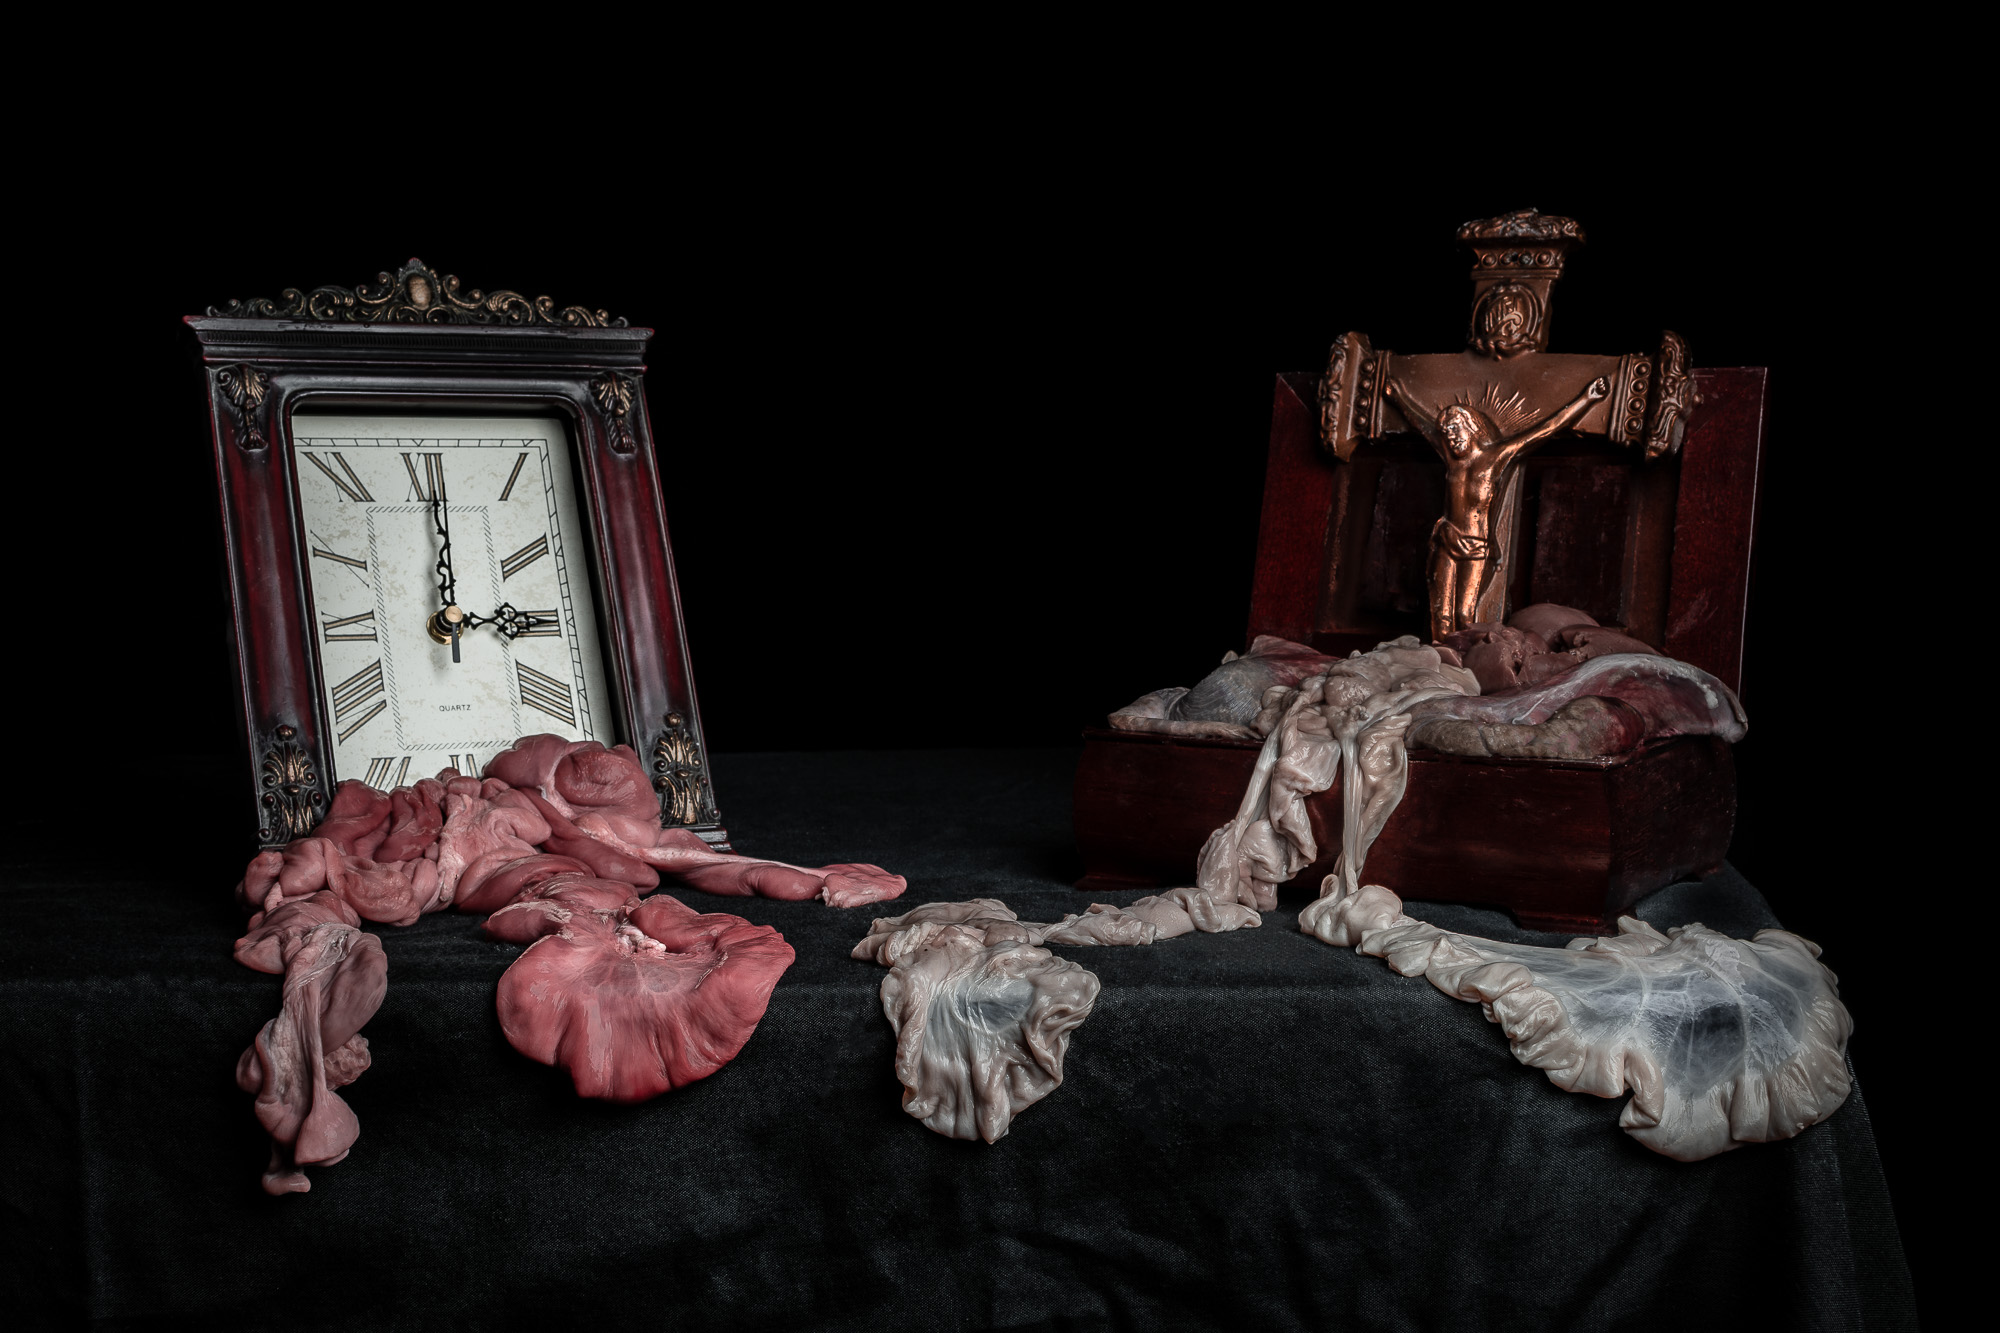 Still Life with Clock and Crucifix: This piece is now available in my  online store .